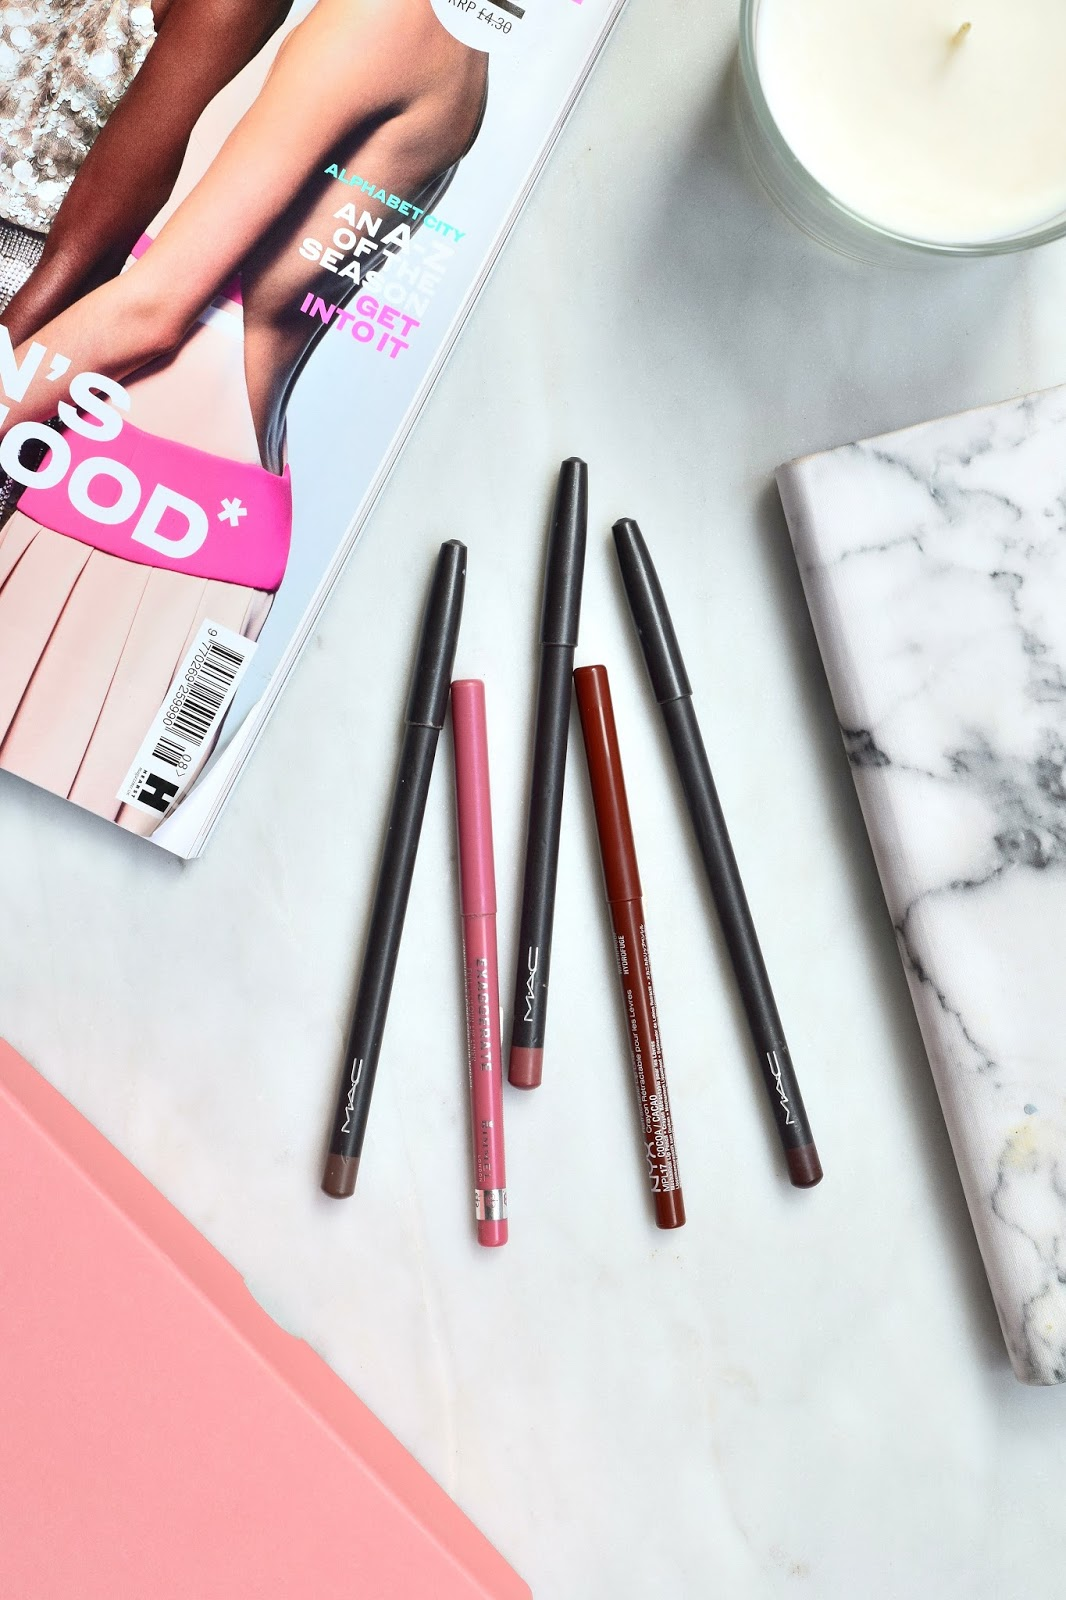 Life Of A Beauty Nerd - Make-Up Must Haves Lip Liners